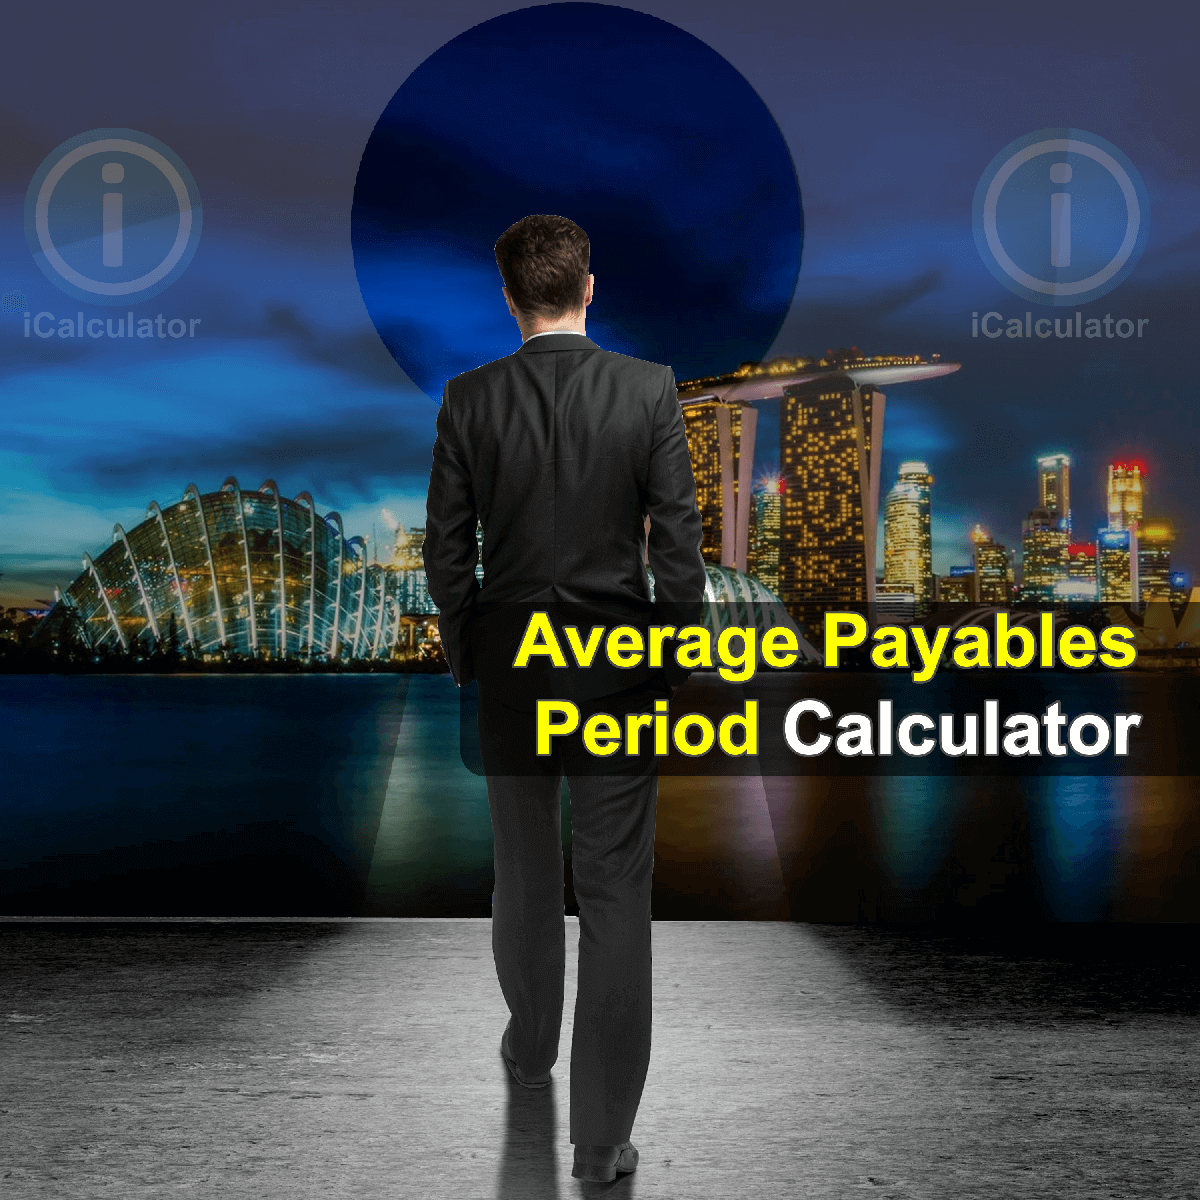 Average Payables Period Calculator. This image provides details of how to calculate the average payables period using a calculator and notepad. By using the Average Payables Period formula, the Average Payables Period Calculator provides a true calculation of the number of days your firm takes to pay off its suppliers and vendors